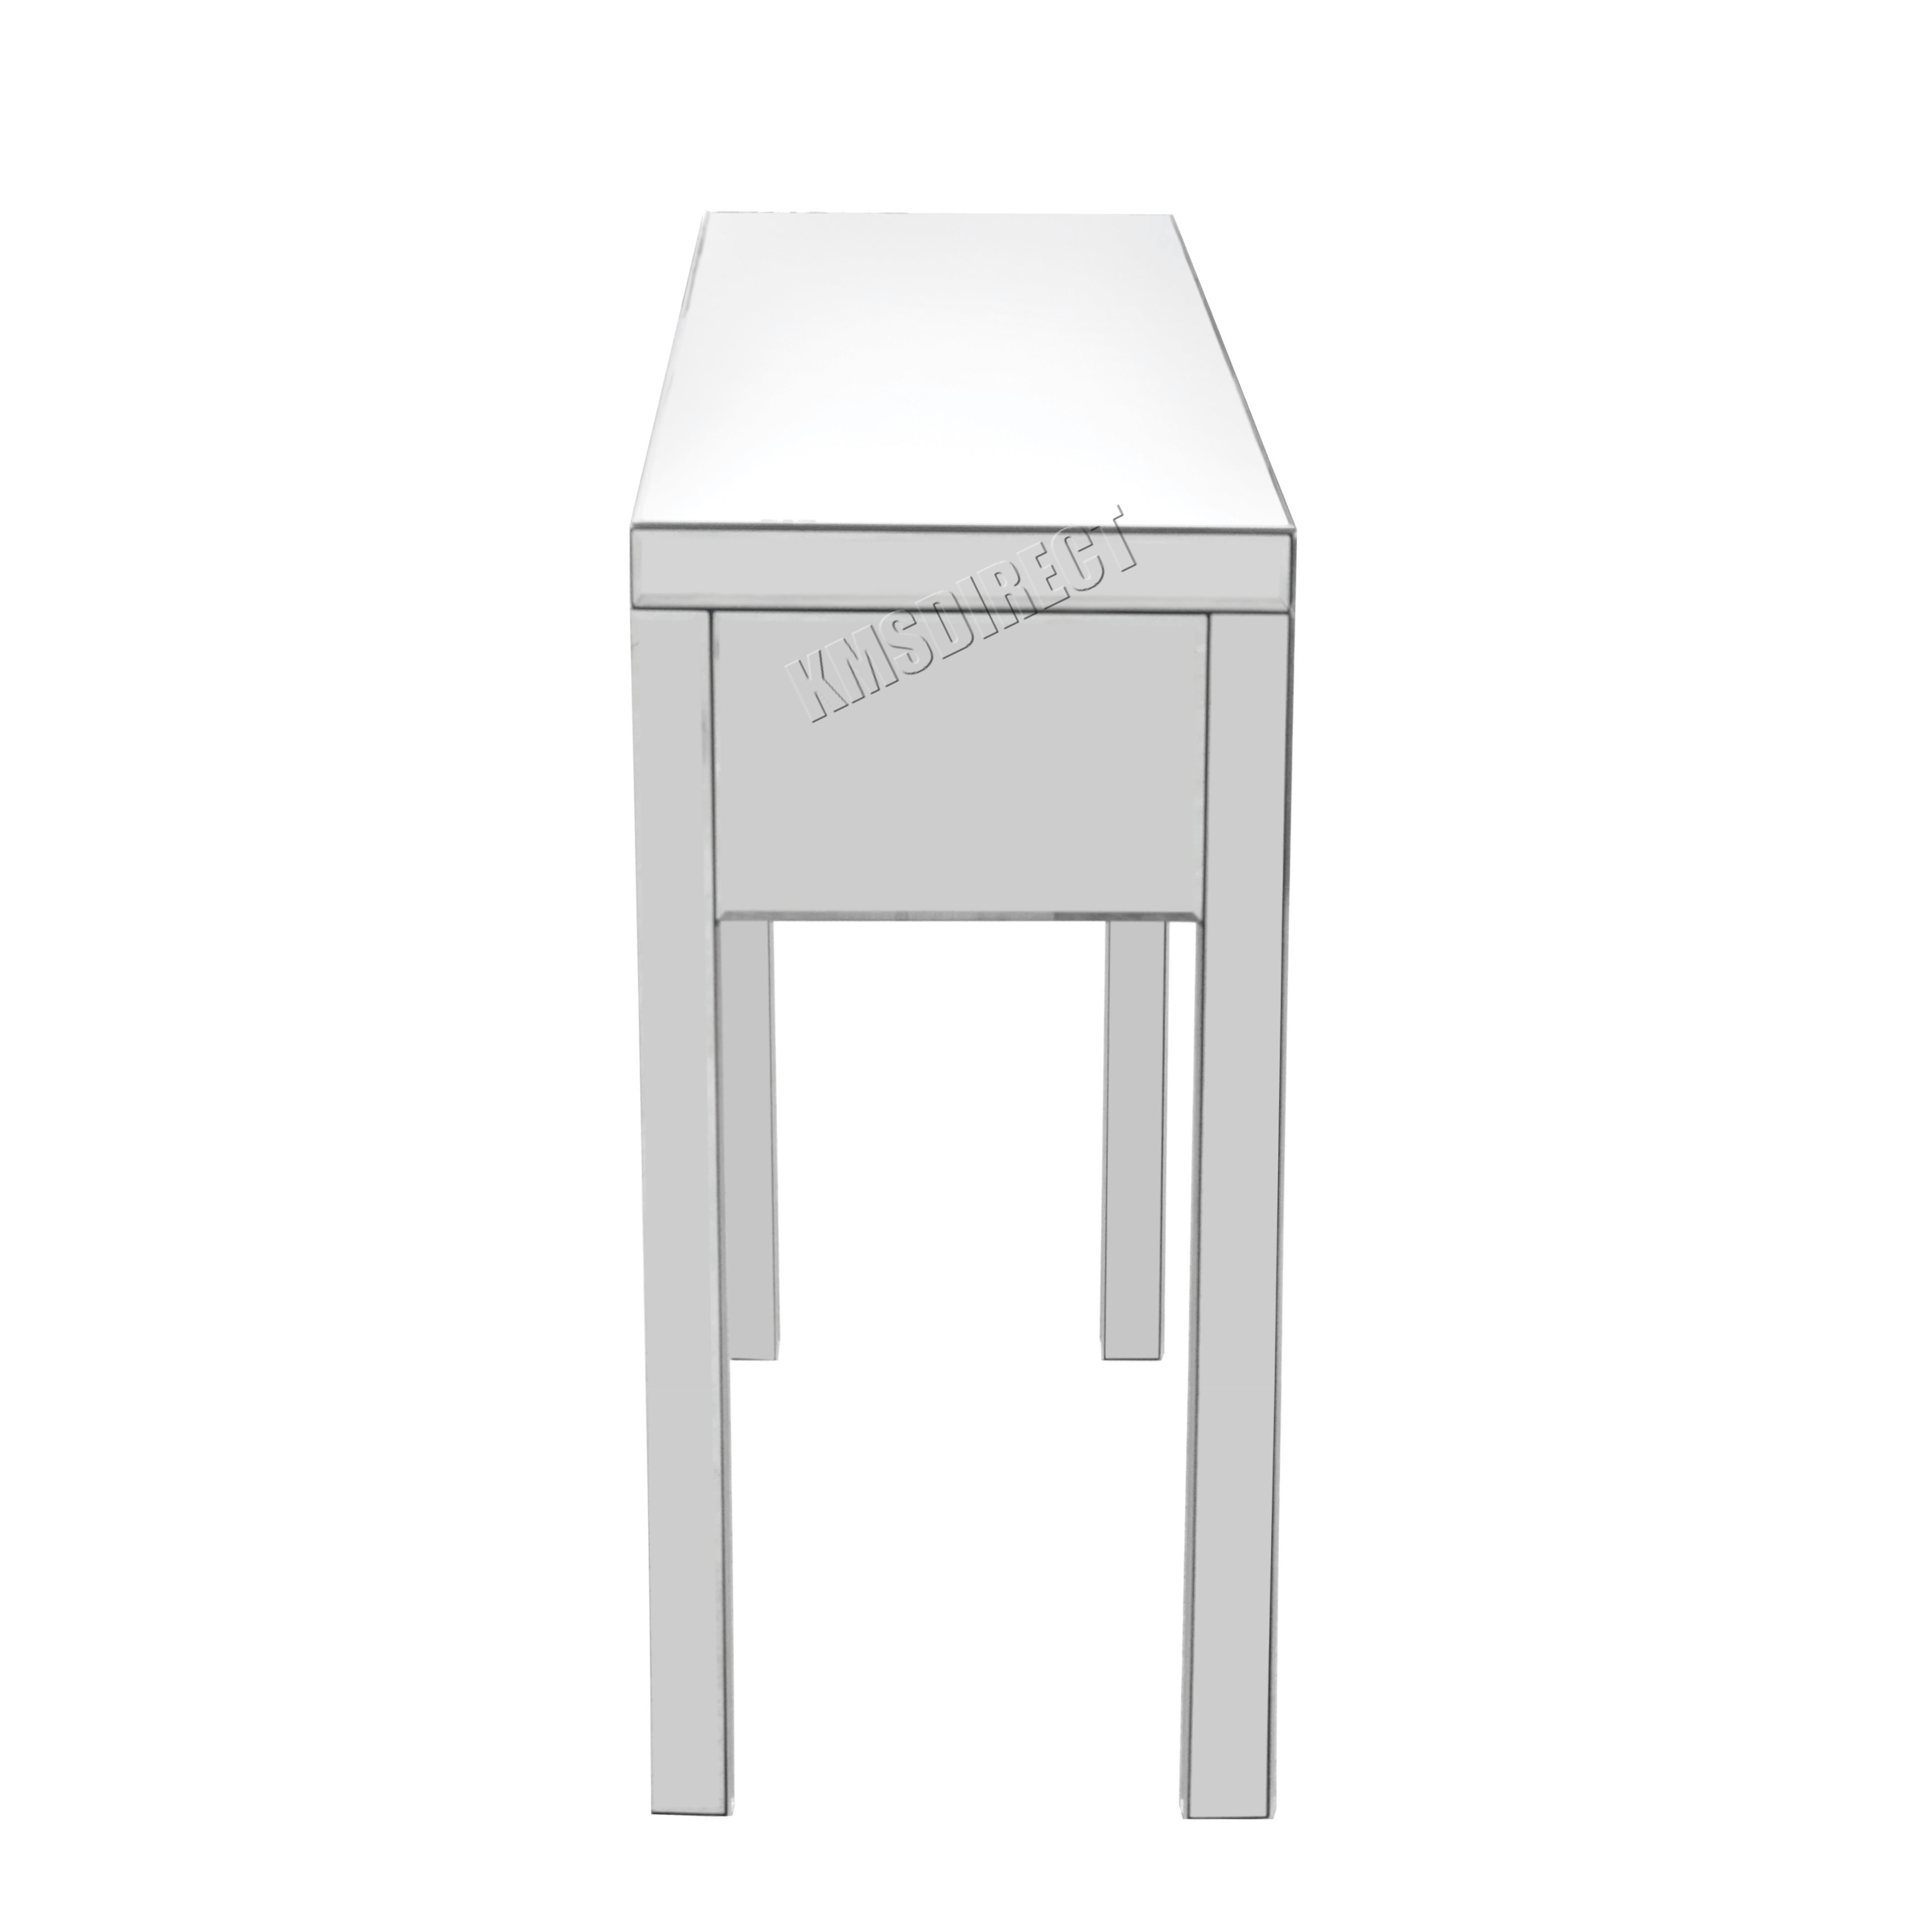 Sentinel WestWood Mirrored Furniture Glass Dressing Table With Drawer  Console Bedroom